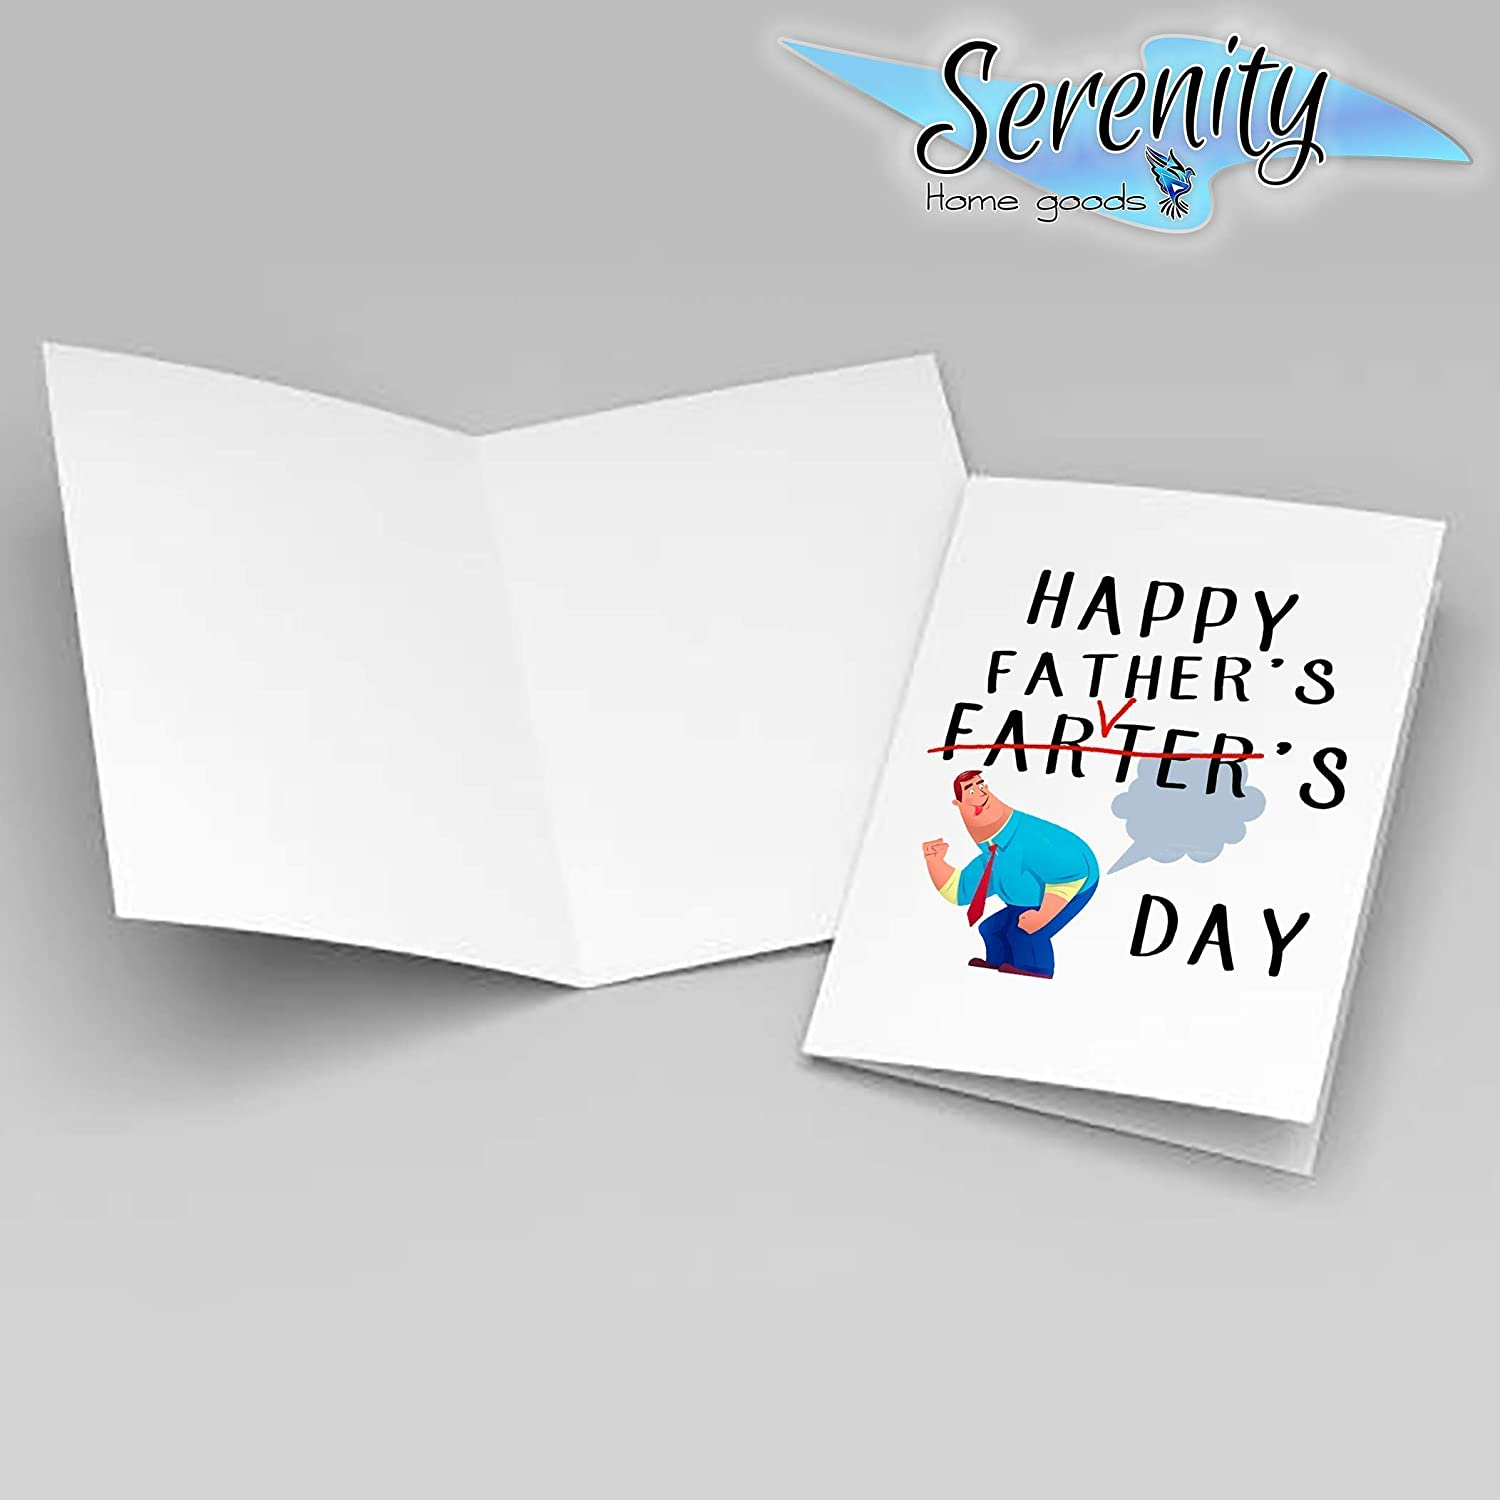 Fathers Day Gifts Card Fathers Day Present Cards Customized Personalized Printing Hilarious Happy Farters Day